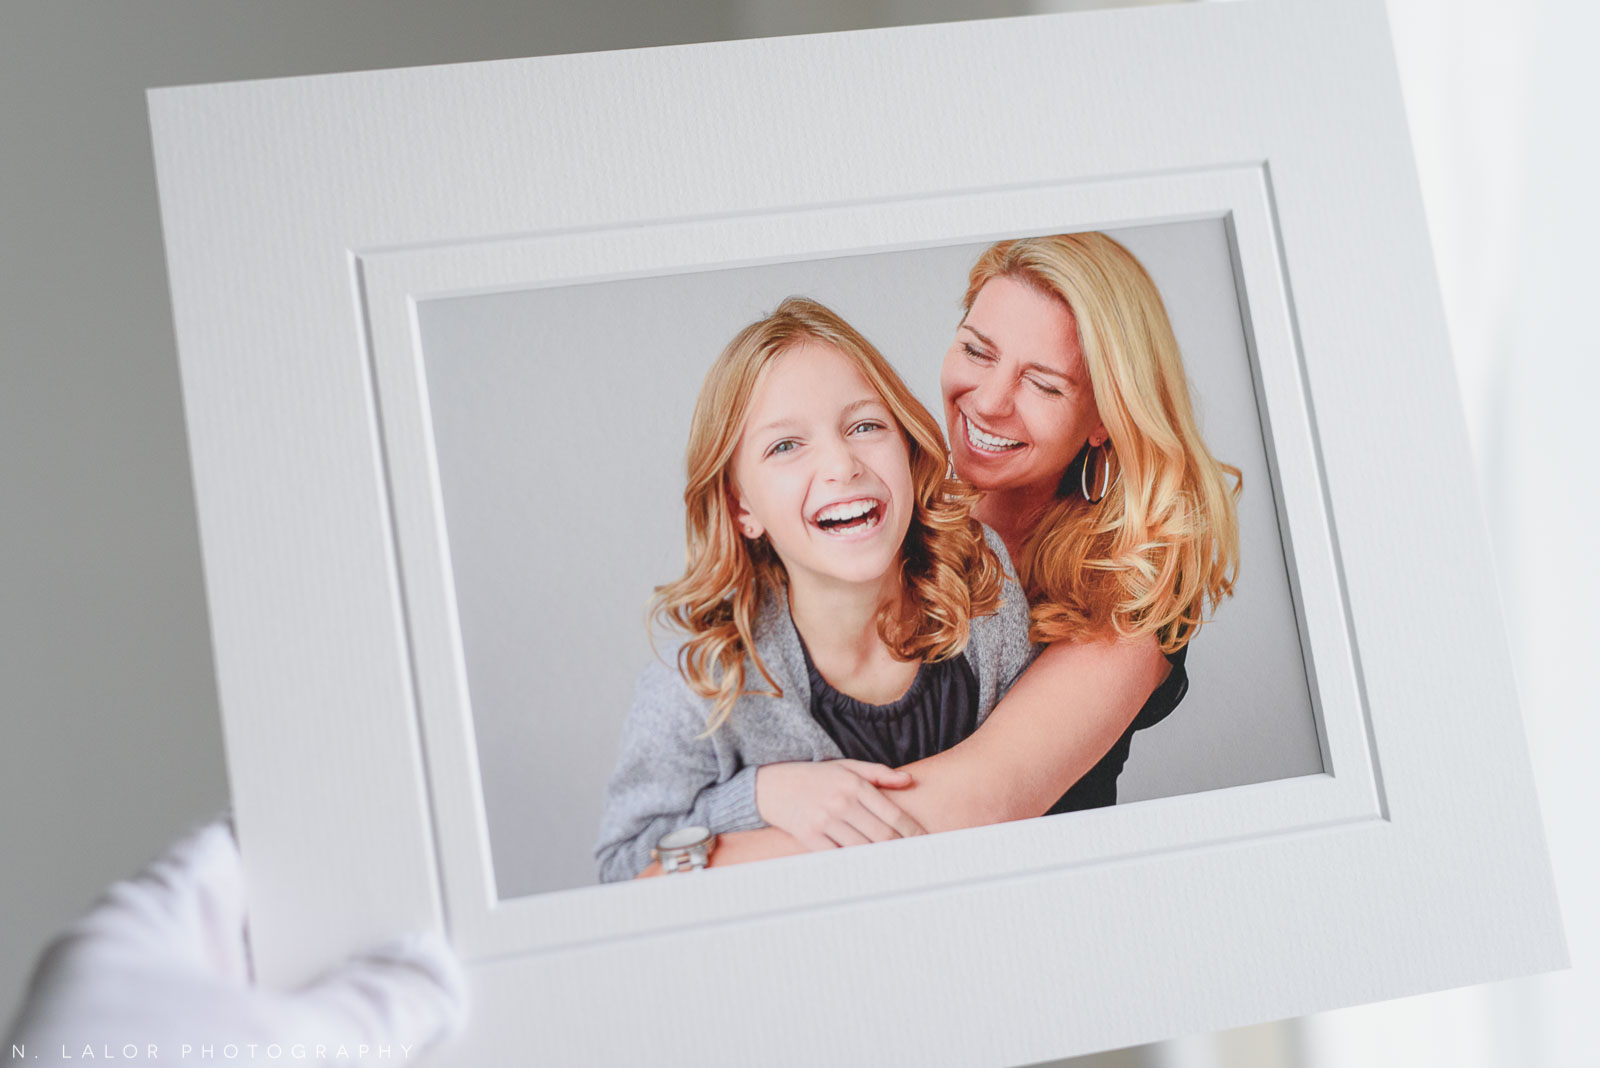 Mom laughing with daughter. Portrait by N. Lalor Photography in Greenwich, Connecticut.